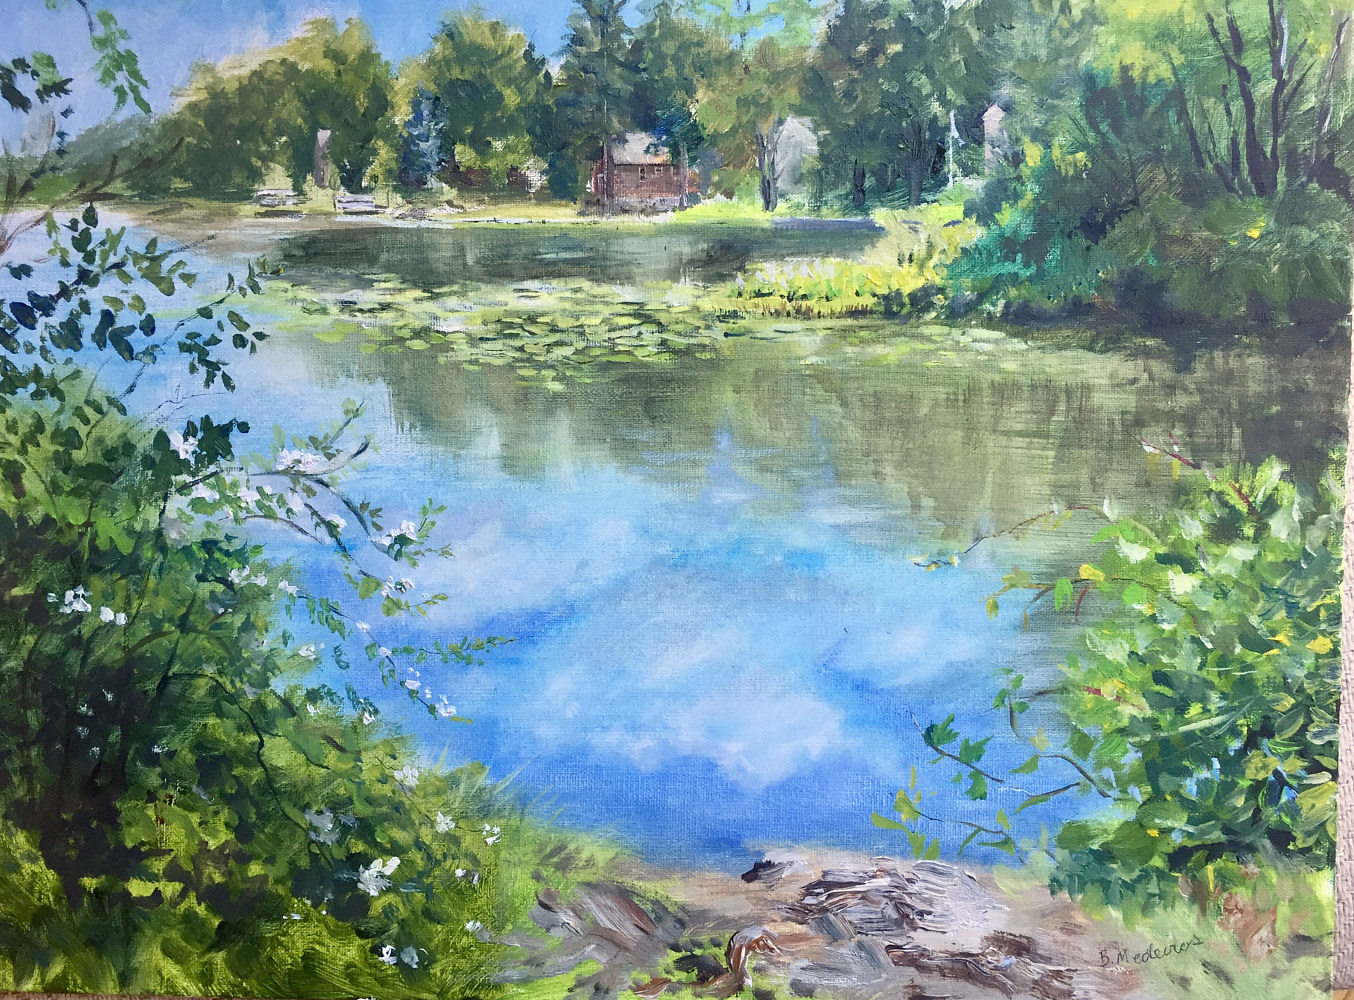 Oil painting Fishing Spot at Ball Pond, New Fairfield, CT. by Elizabeth4361 Medeiros